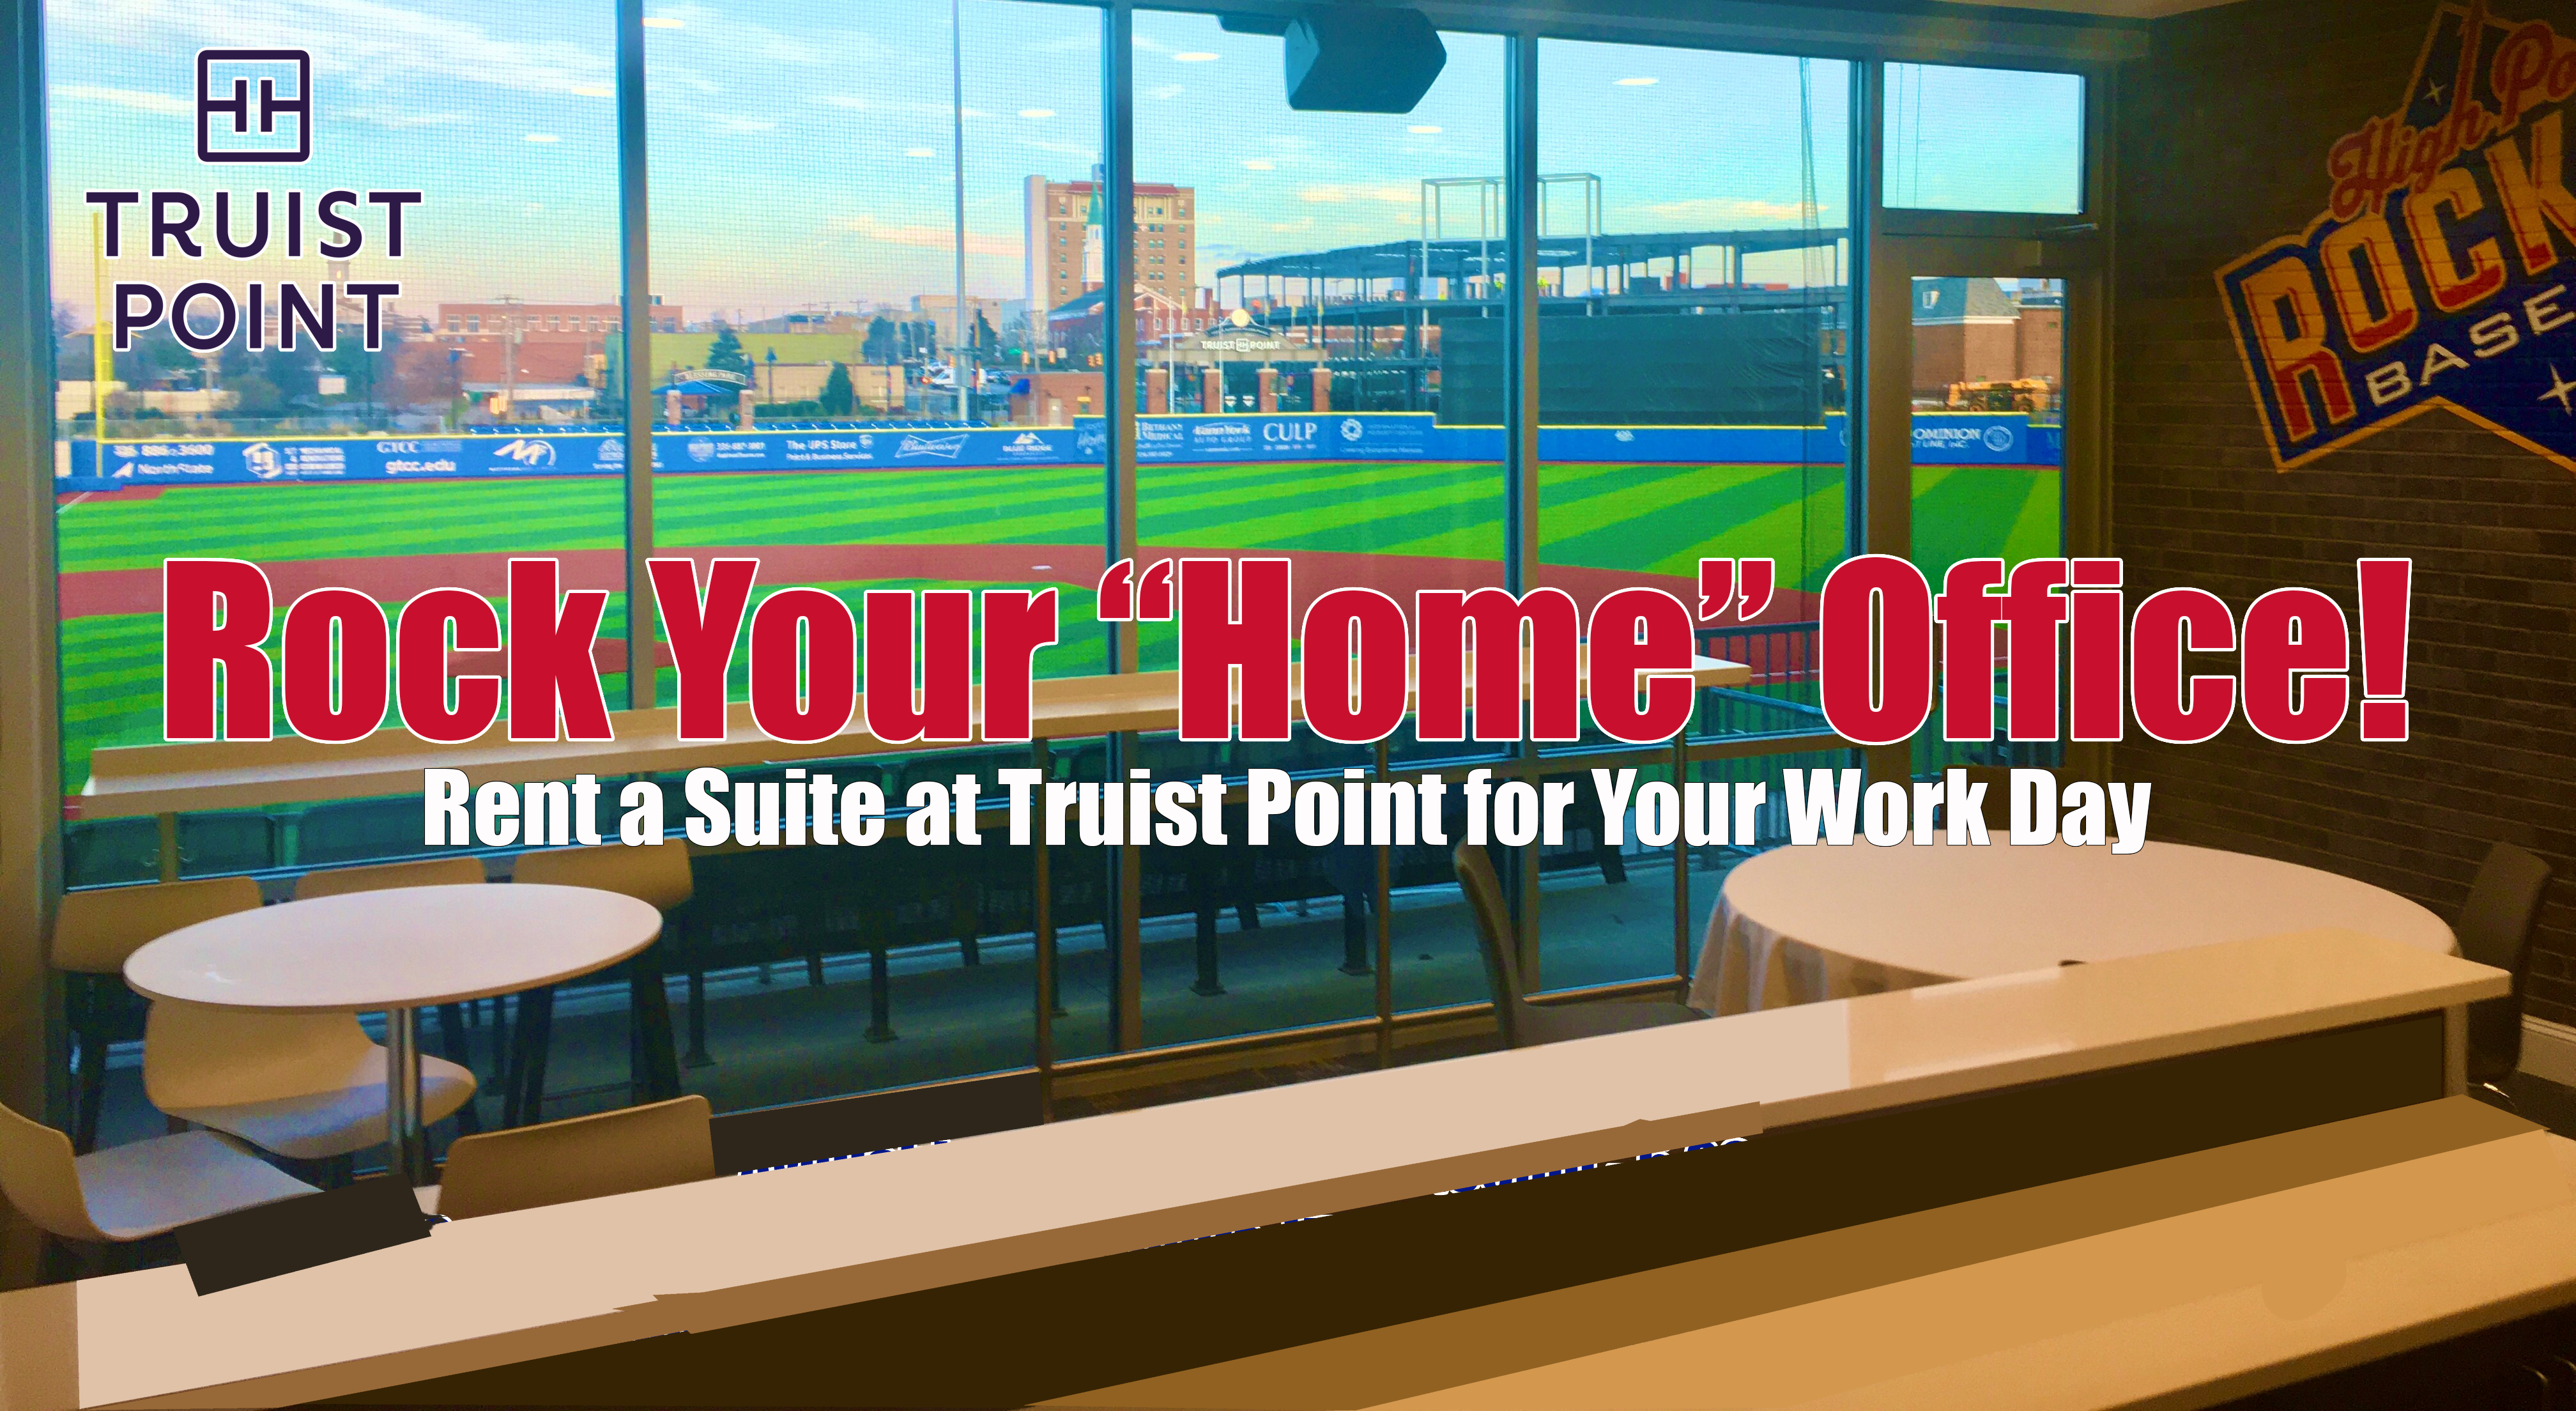 Getting Sick of Working from Home? Work from one of ours at Truist Point Stadium!